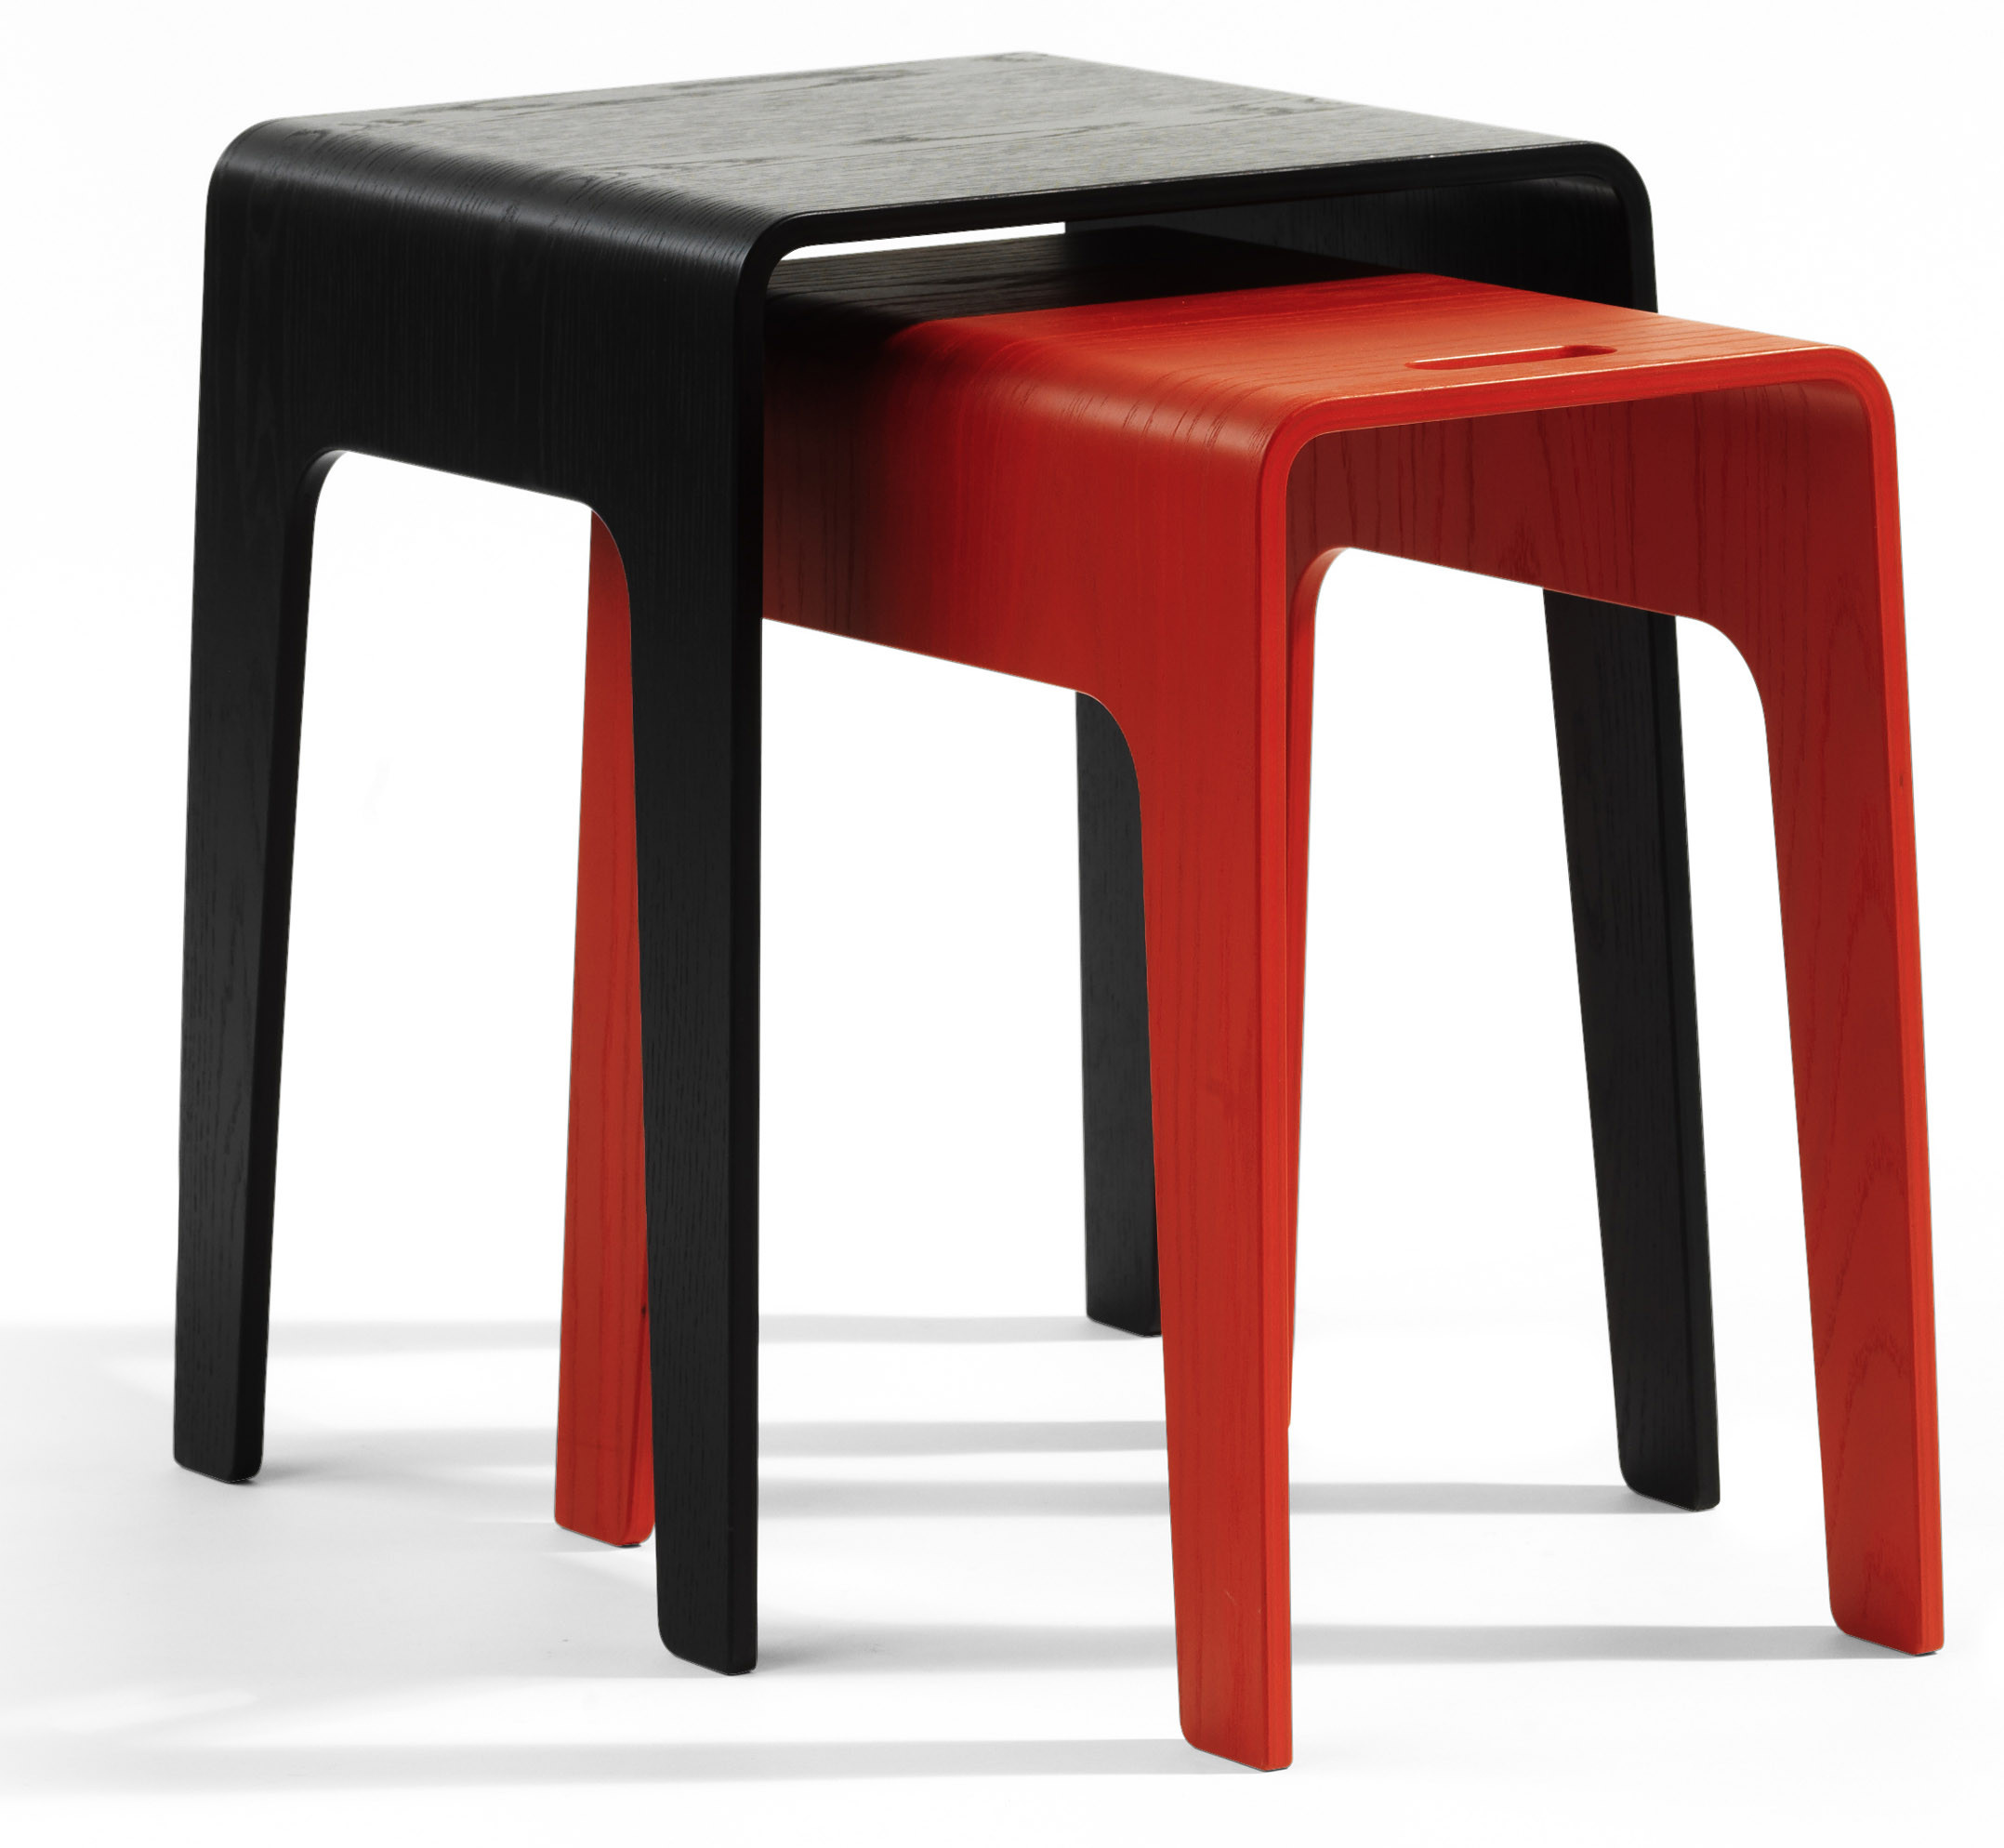 Bimbed and Bimbord Side Tables